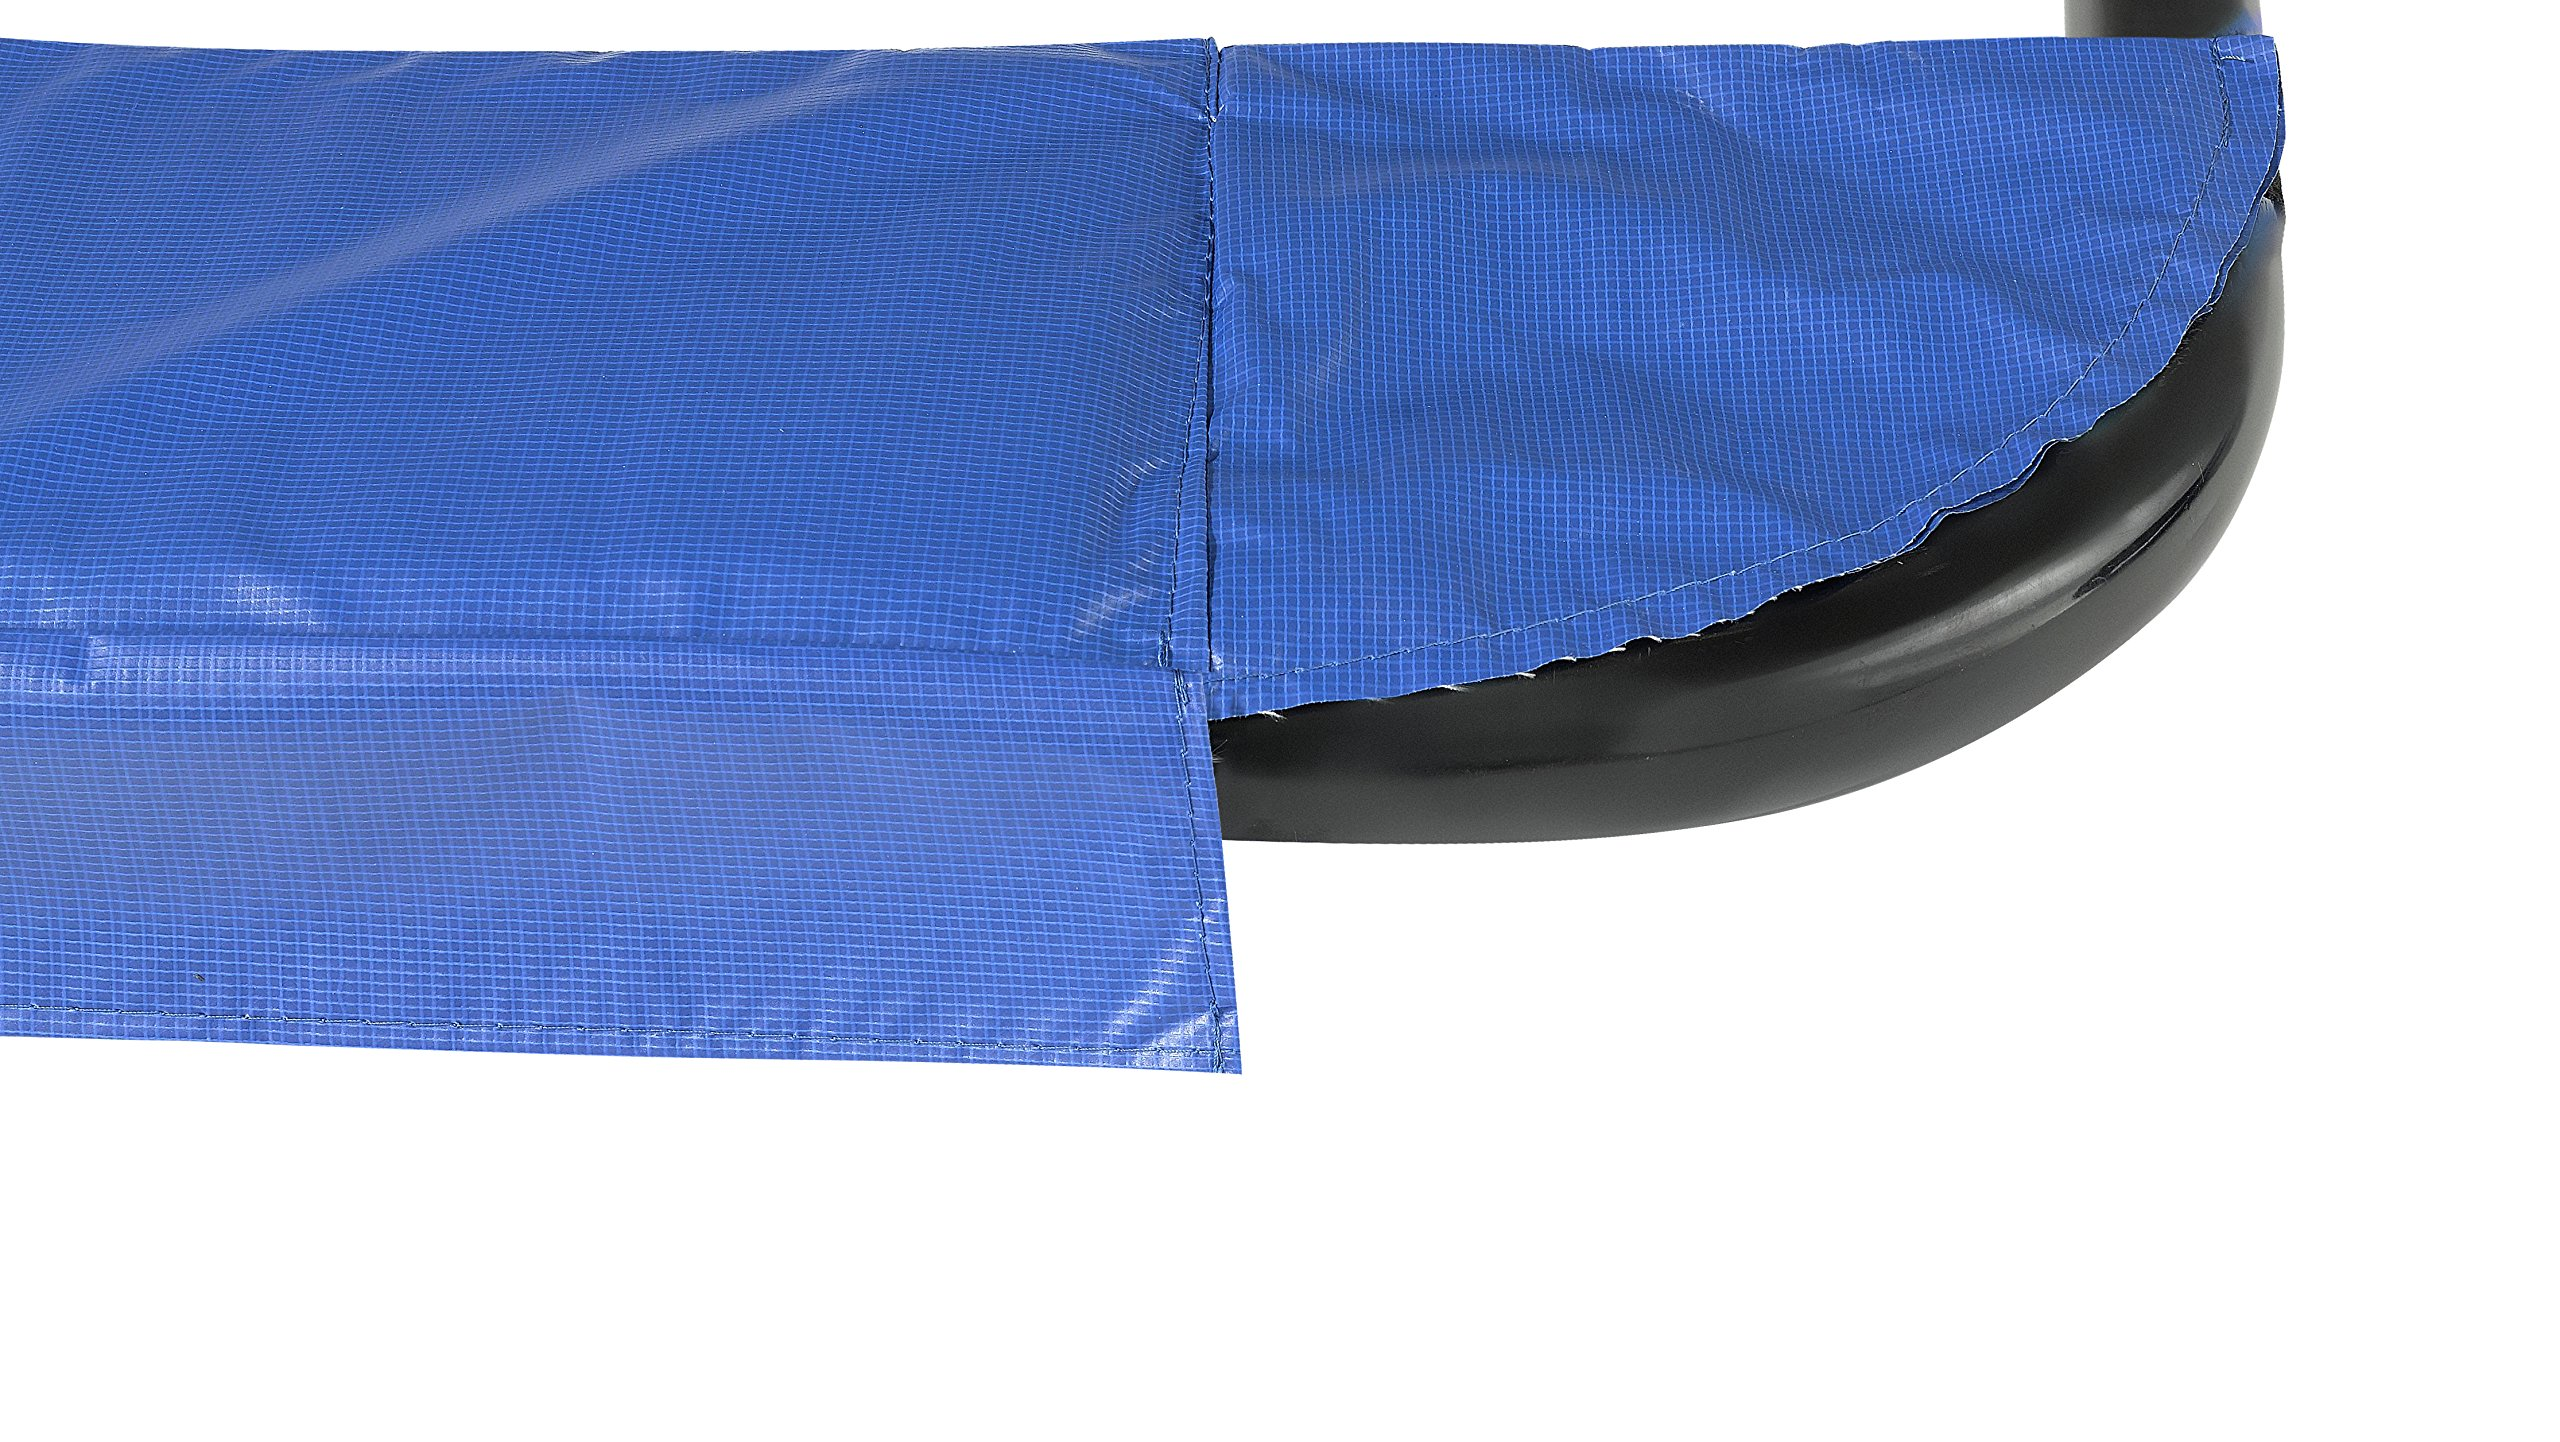 Upper Bounce Super Trampoline Replacement Safety Pad (Spring Cover) for 9' x 15' Rectangular Frames, Blue by Upper Bounce (Image #5)